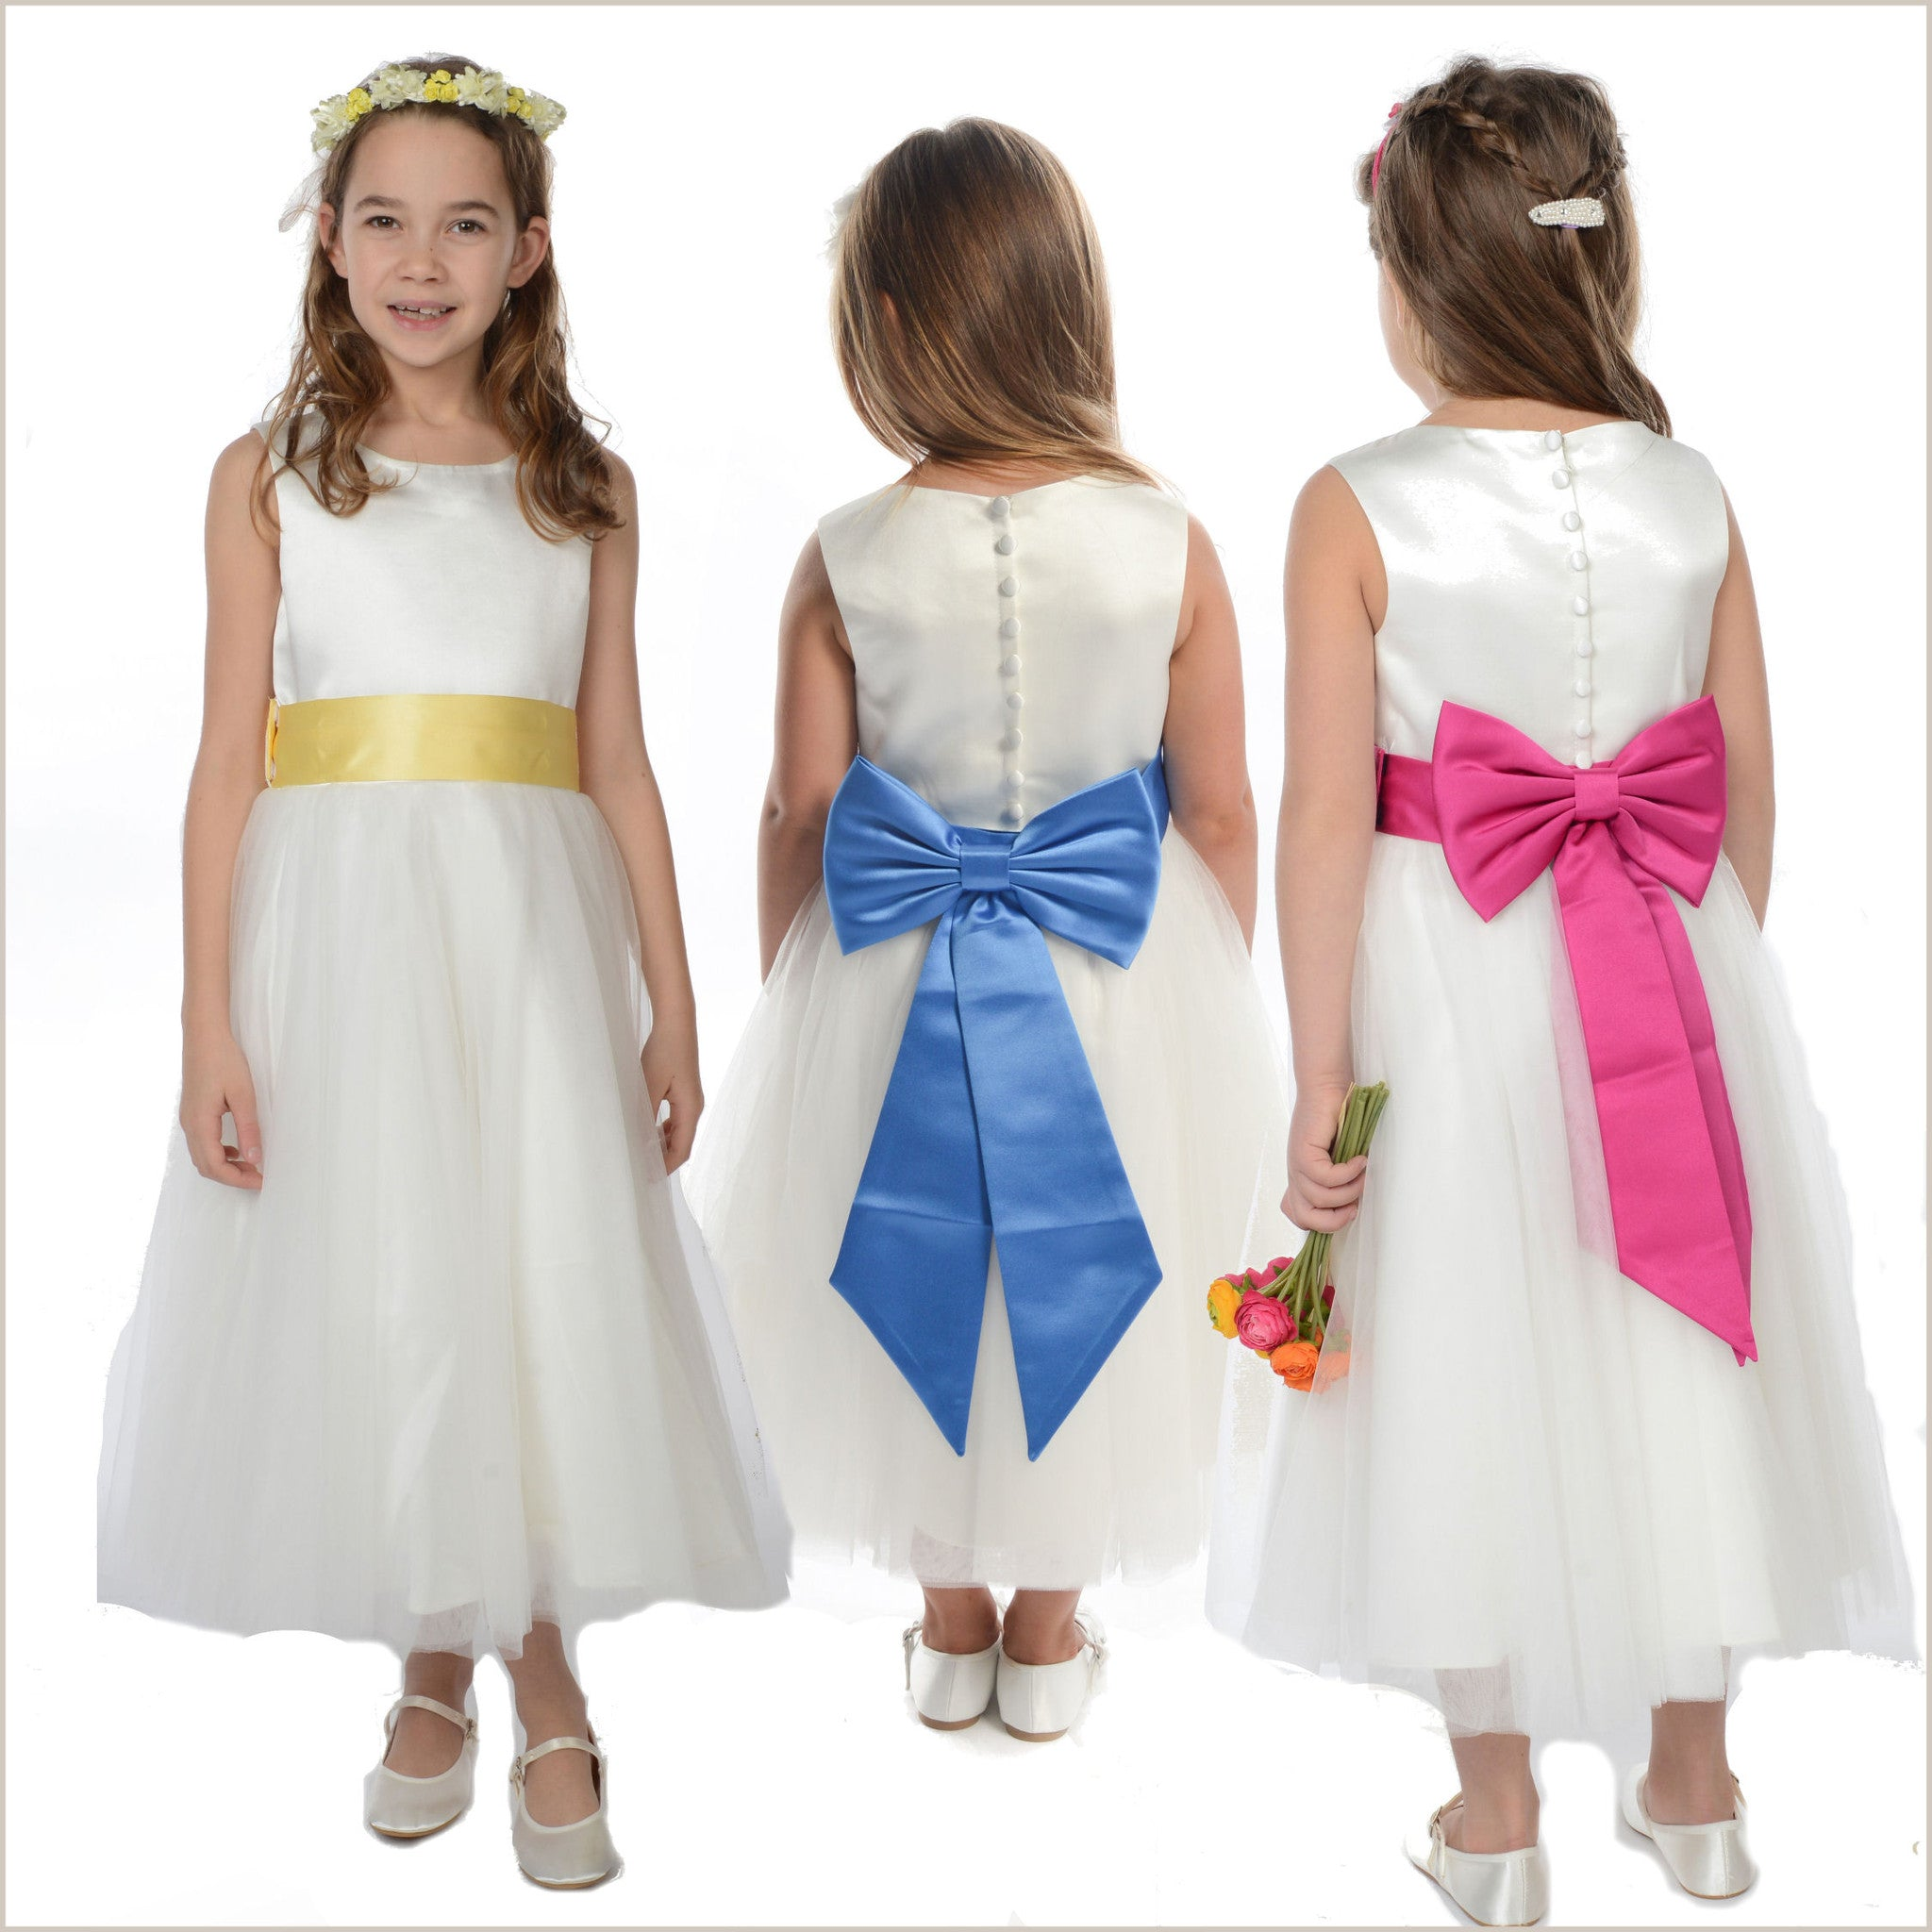 b12e5cda3 Pre-Tied Bow or Bows Sashes for bridesmaid and flower girl dresses